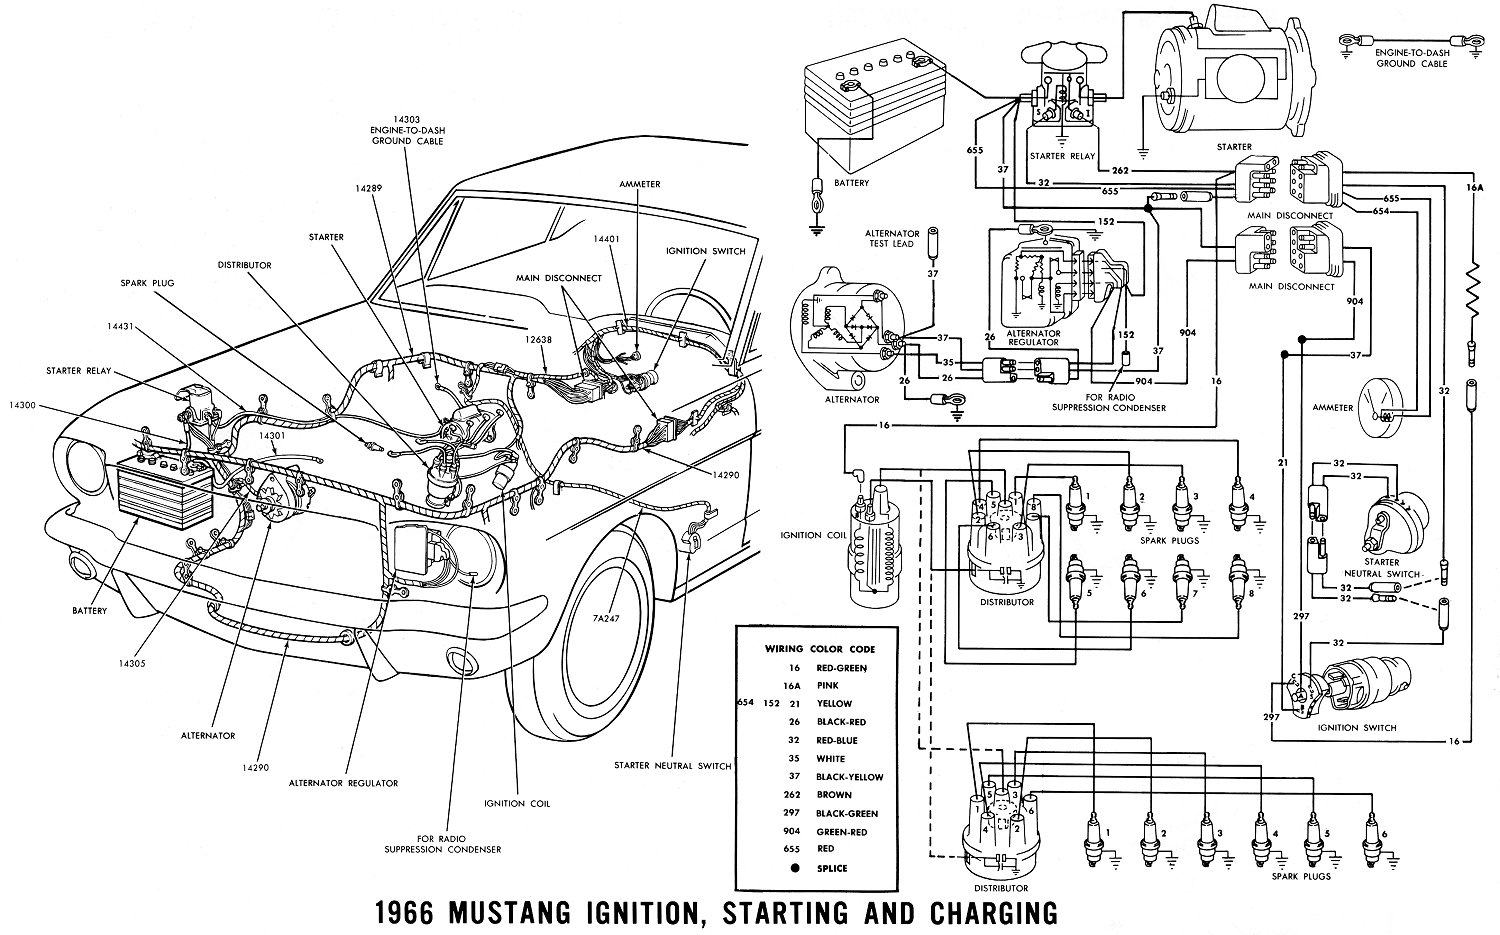 wiring diagram for 1985 ford mustang pdf with Viewtopic on P 0900c15280045126 also Index11 in addition Grounding Wire Location Help Please 10069 moreover 1967 Mustang Wiring And Vacuum Diagrams likewise 1983 1988 Ford Bronco Ii Start Ignition.